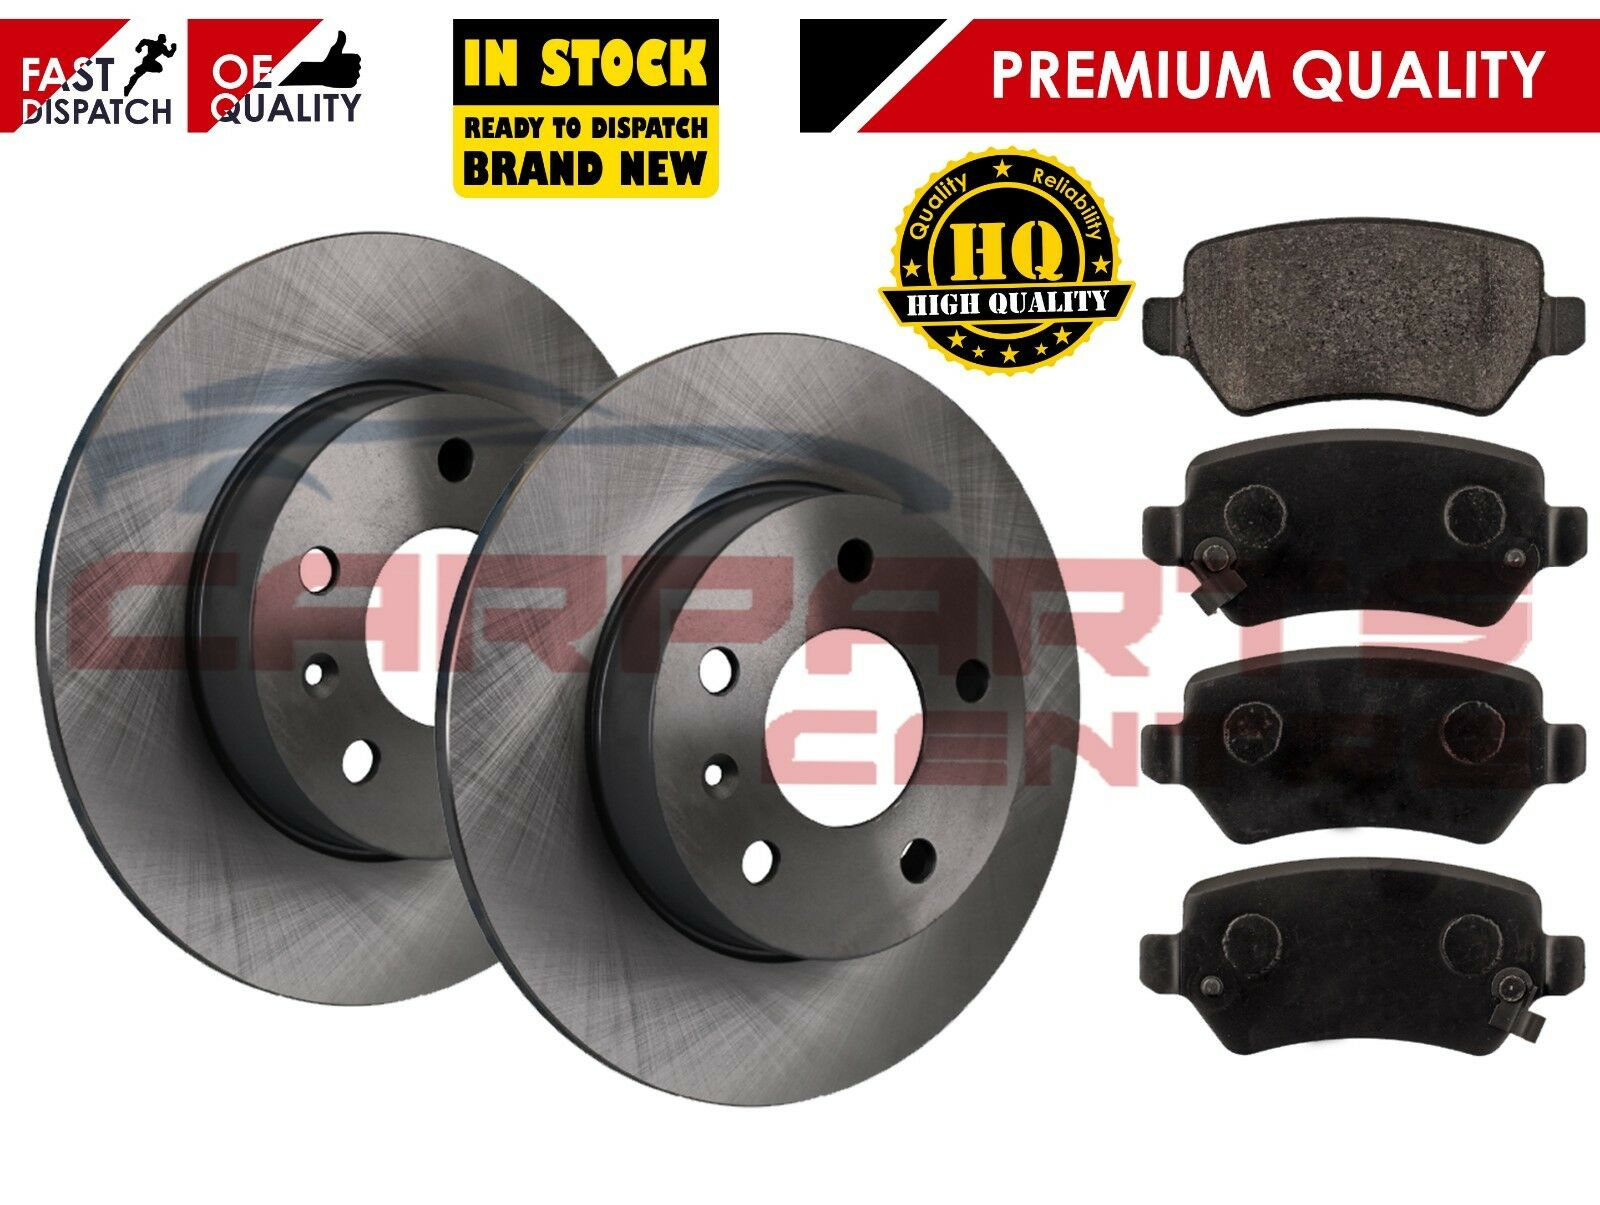 Fits Opel Astra H 1.7 CDTi Genuine Mintex Rear Brake Pad Fitting Kit